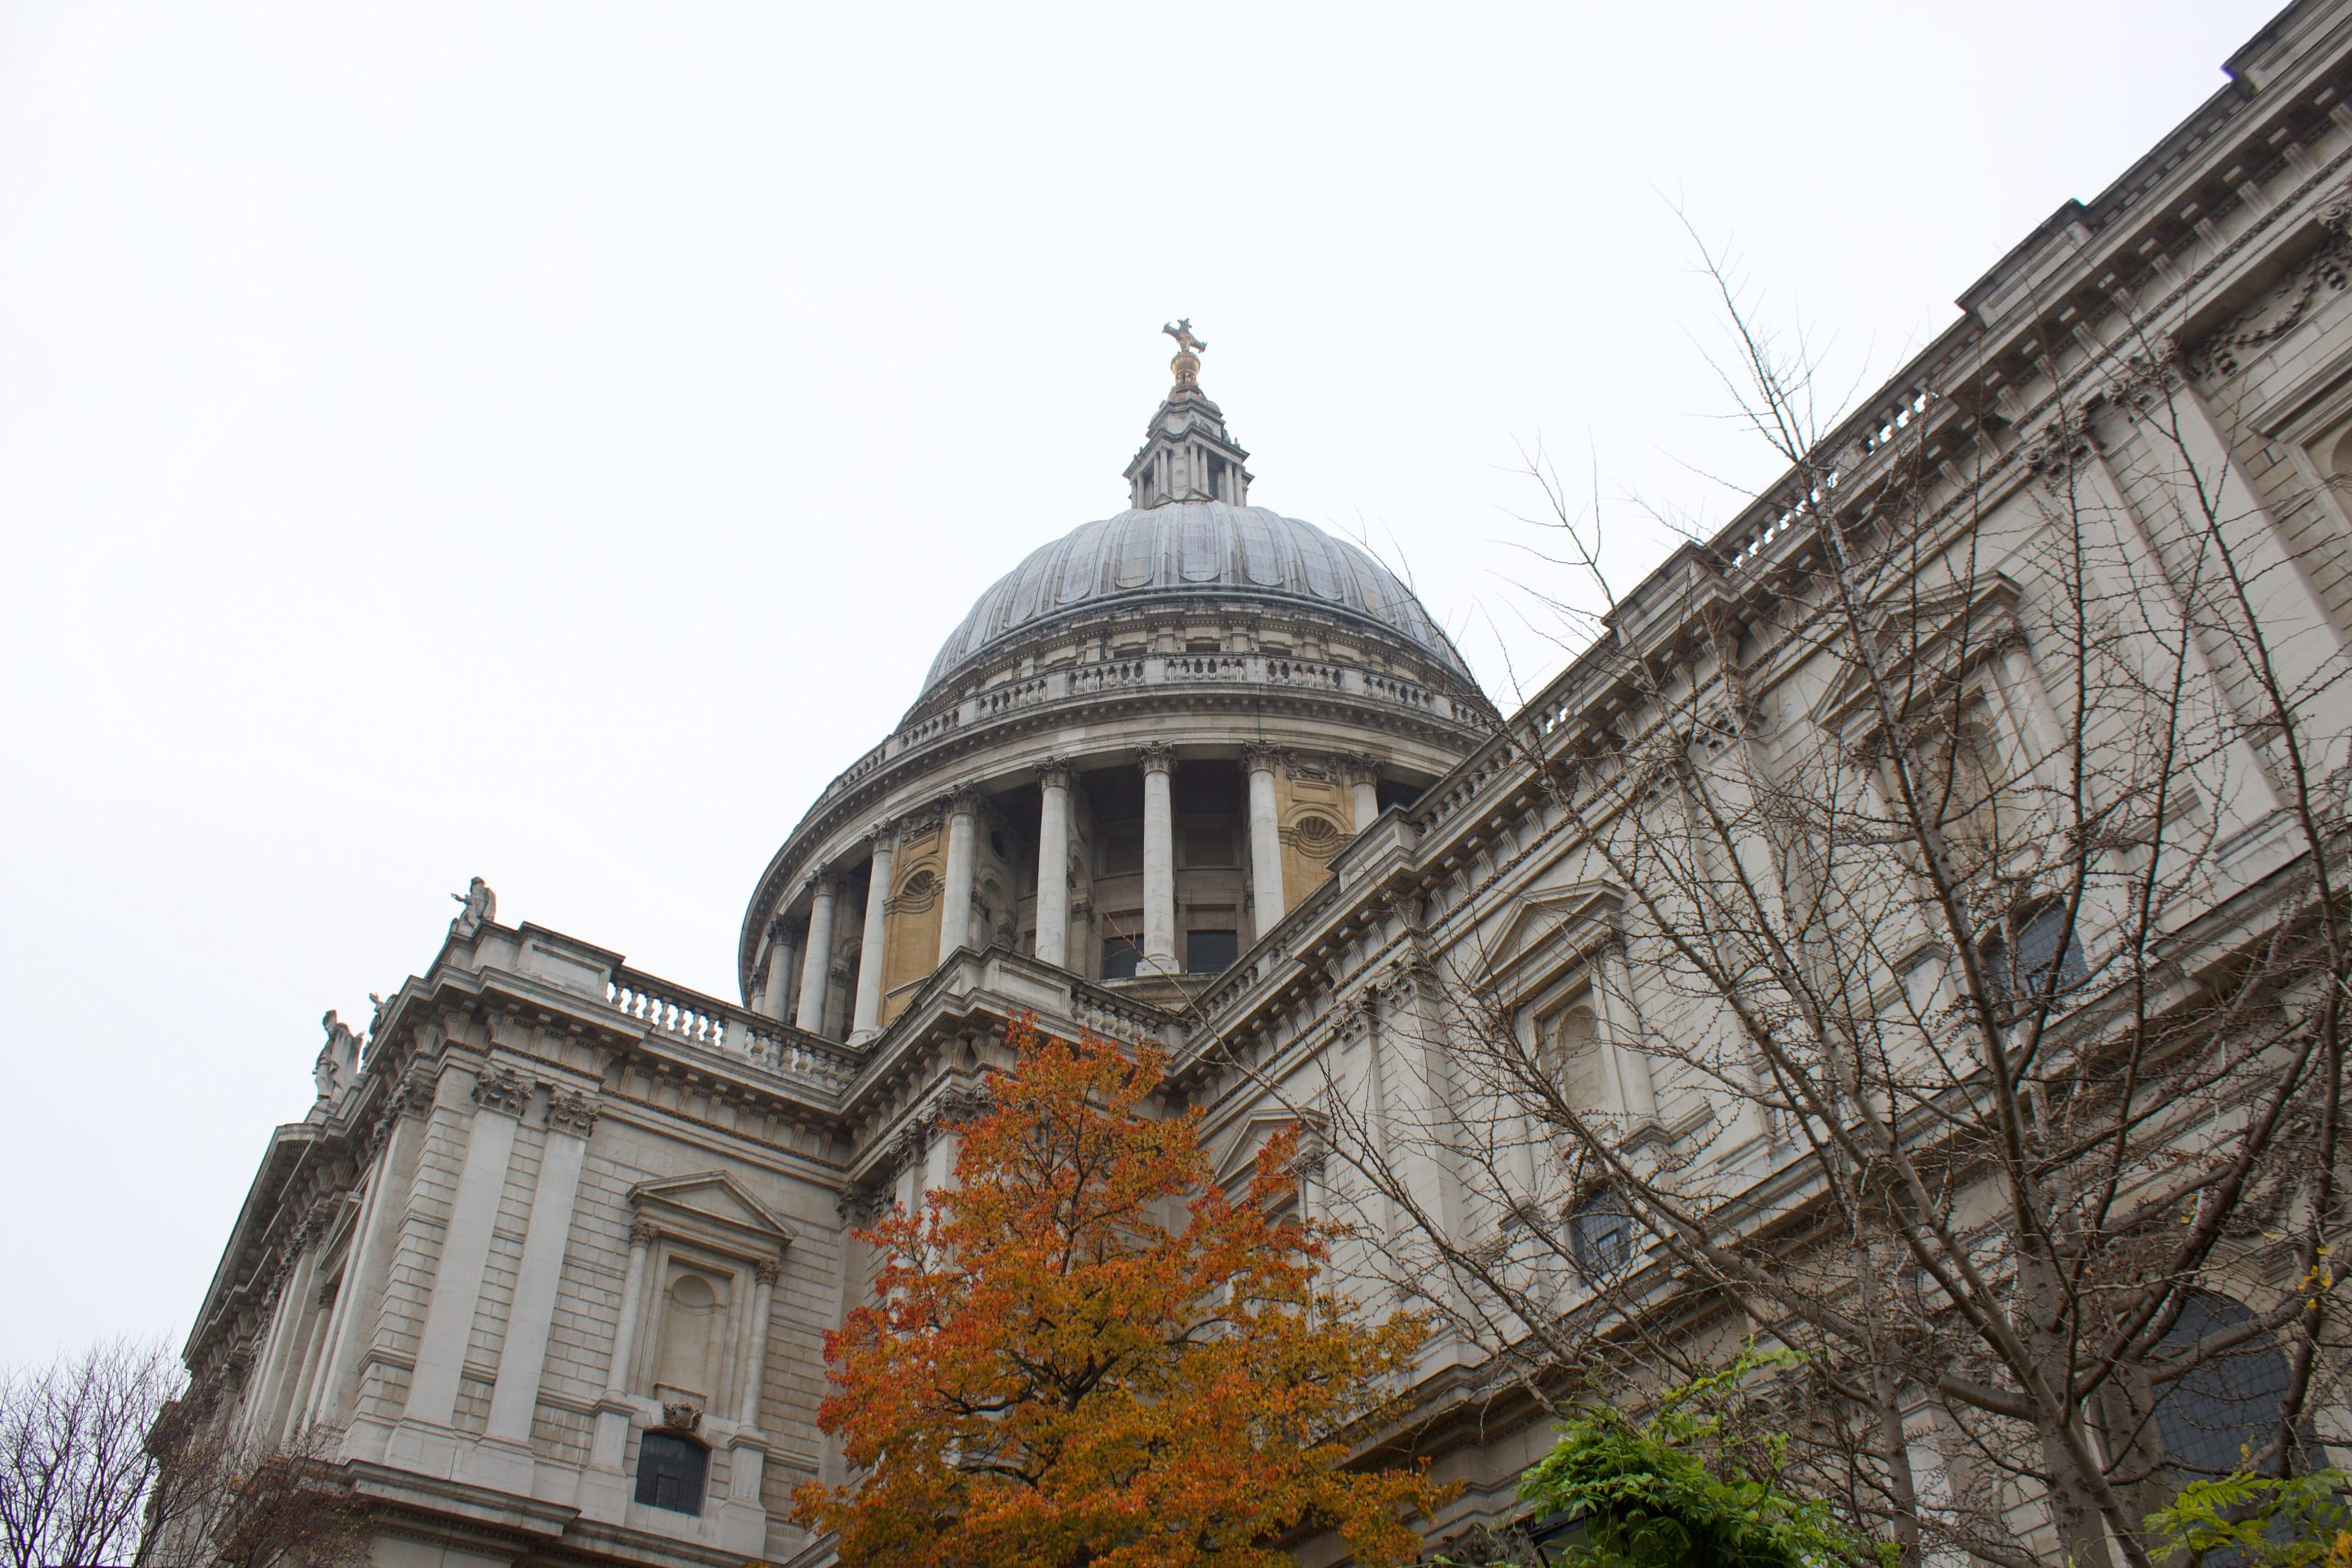 St Paul's Cathedral, December 2020